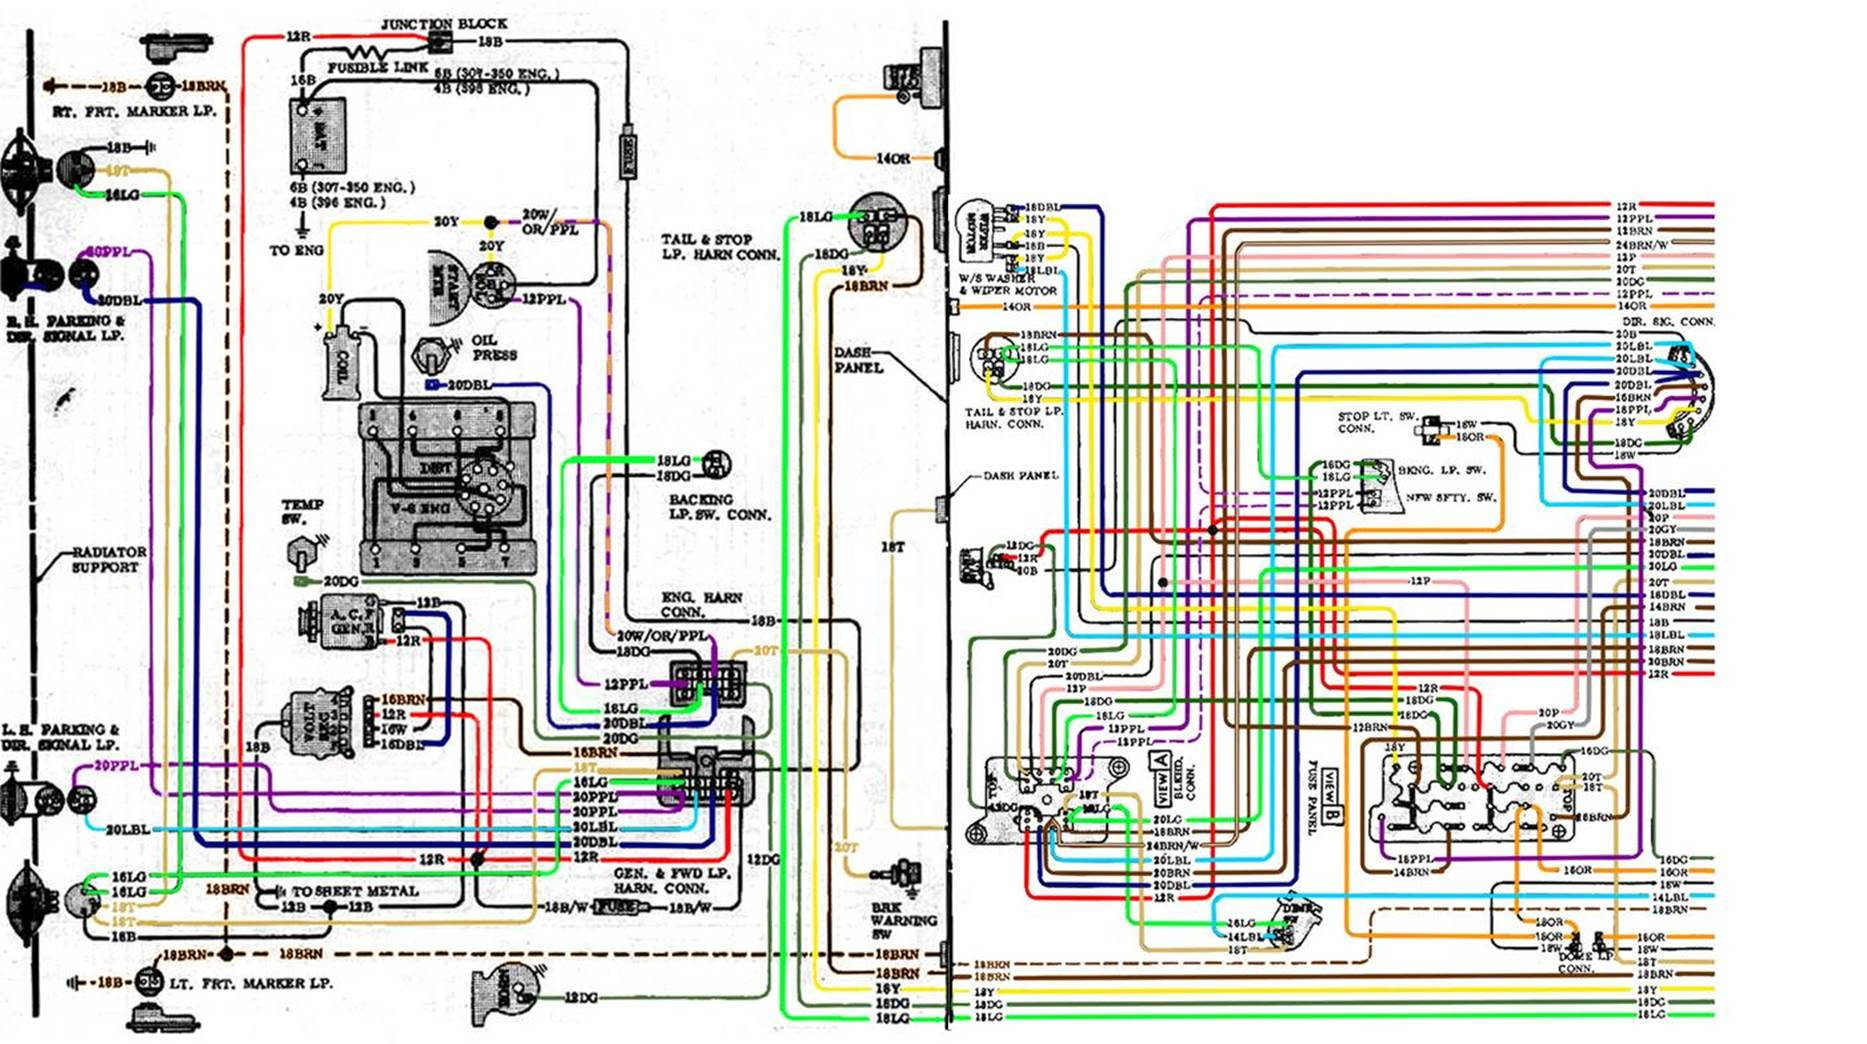 image002 67 72 chevy wiring diagram  at nearapp.co